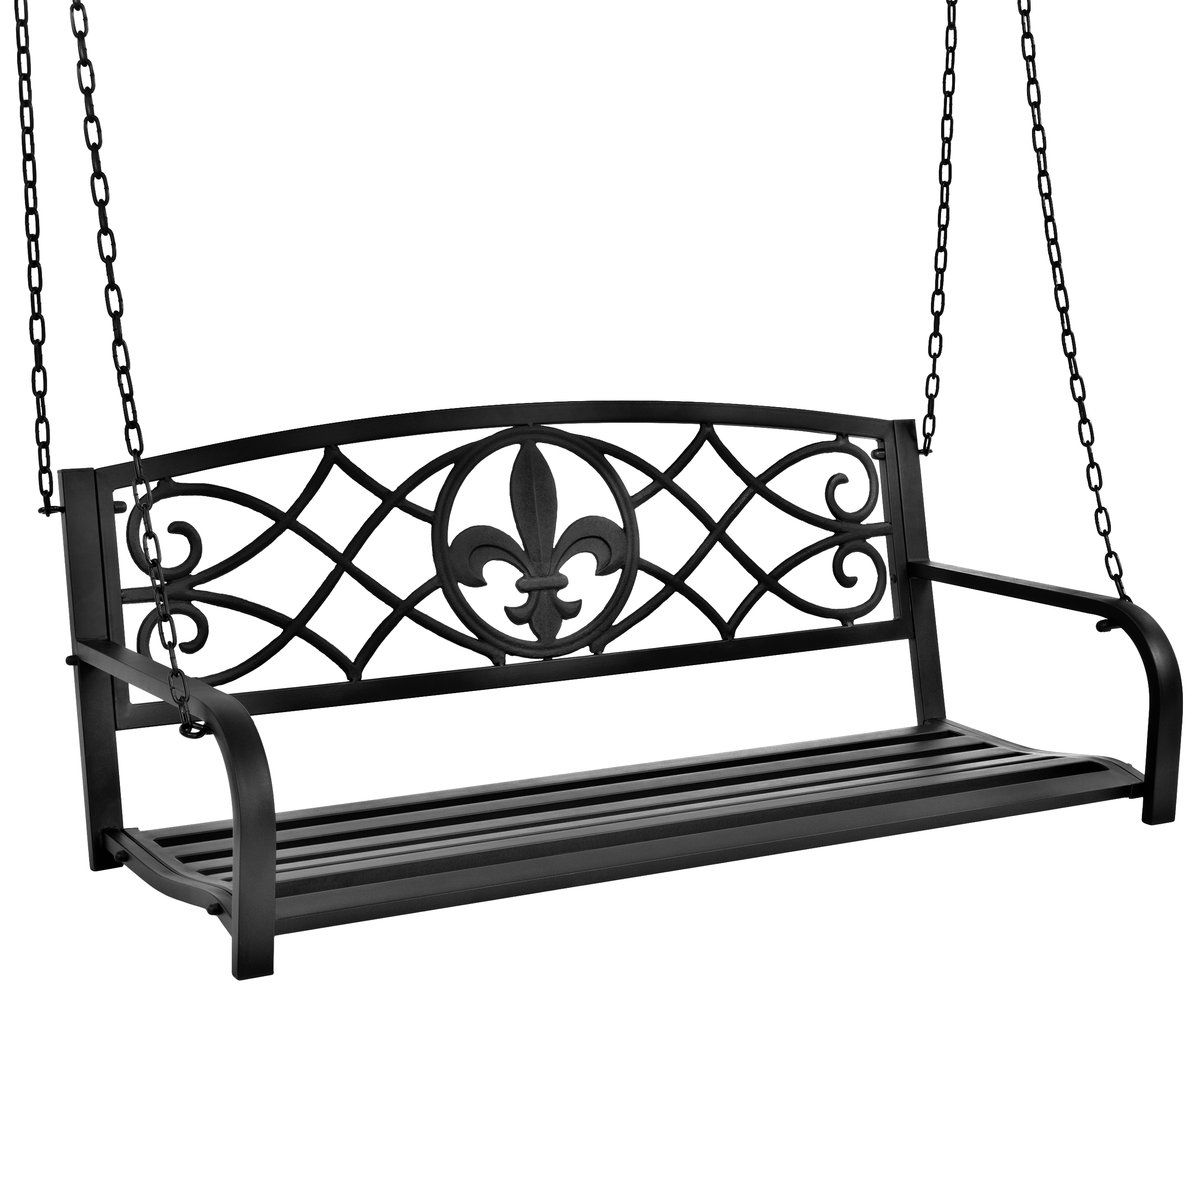 cee2d76ff305f5025c73ff437ab4903c - Better Homes & Gardens Vaughn Canopy Patio Swing